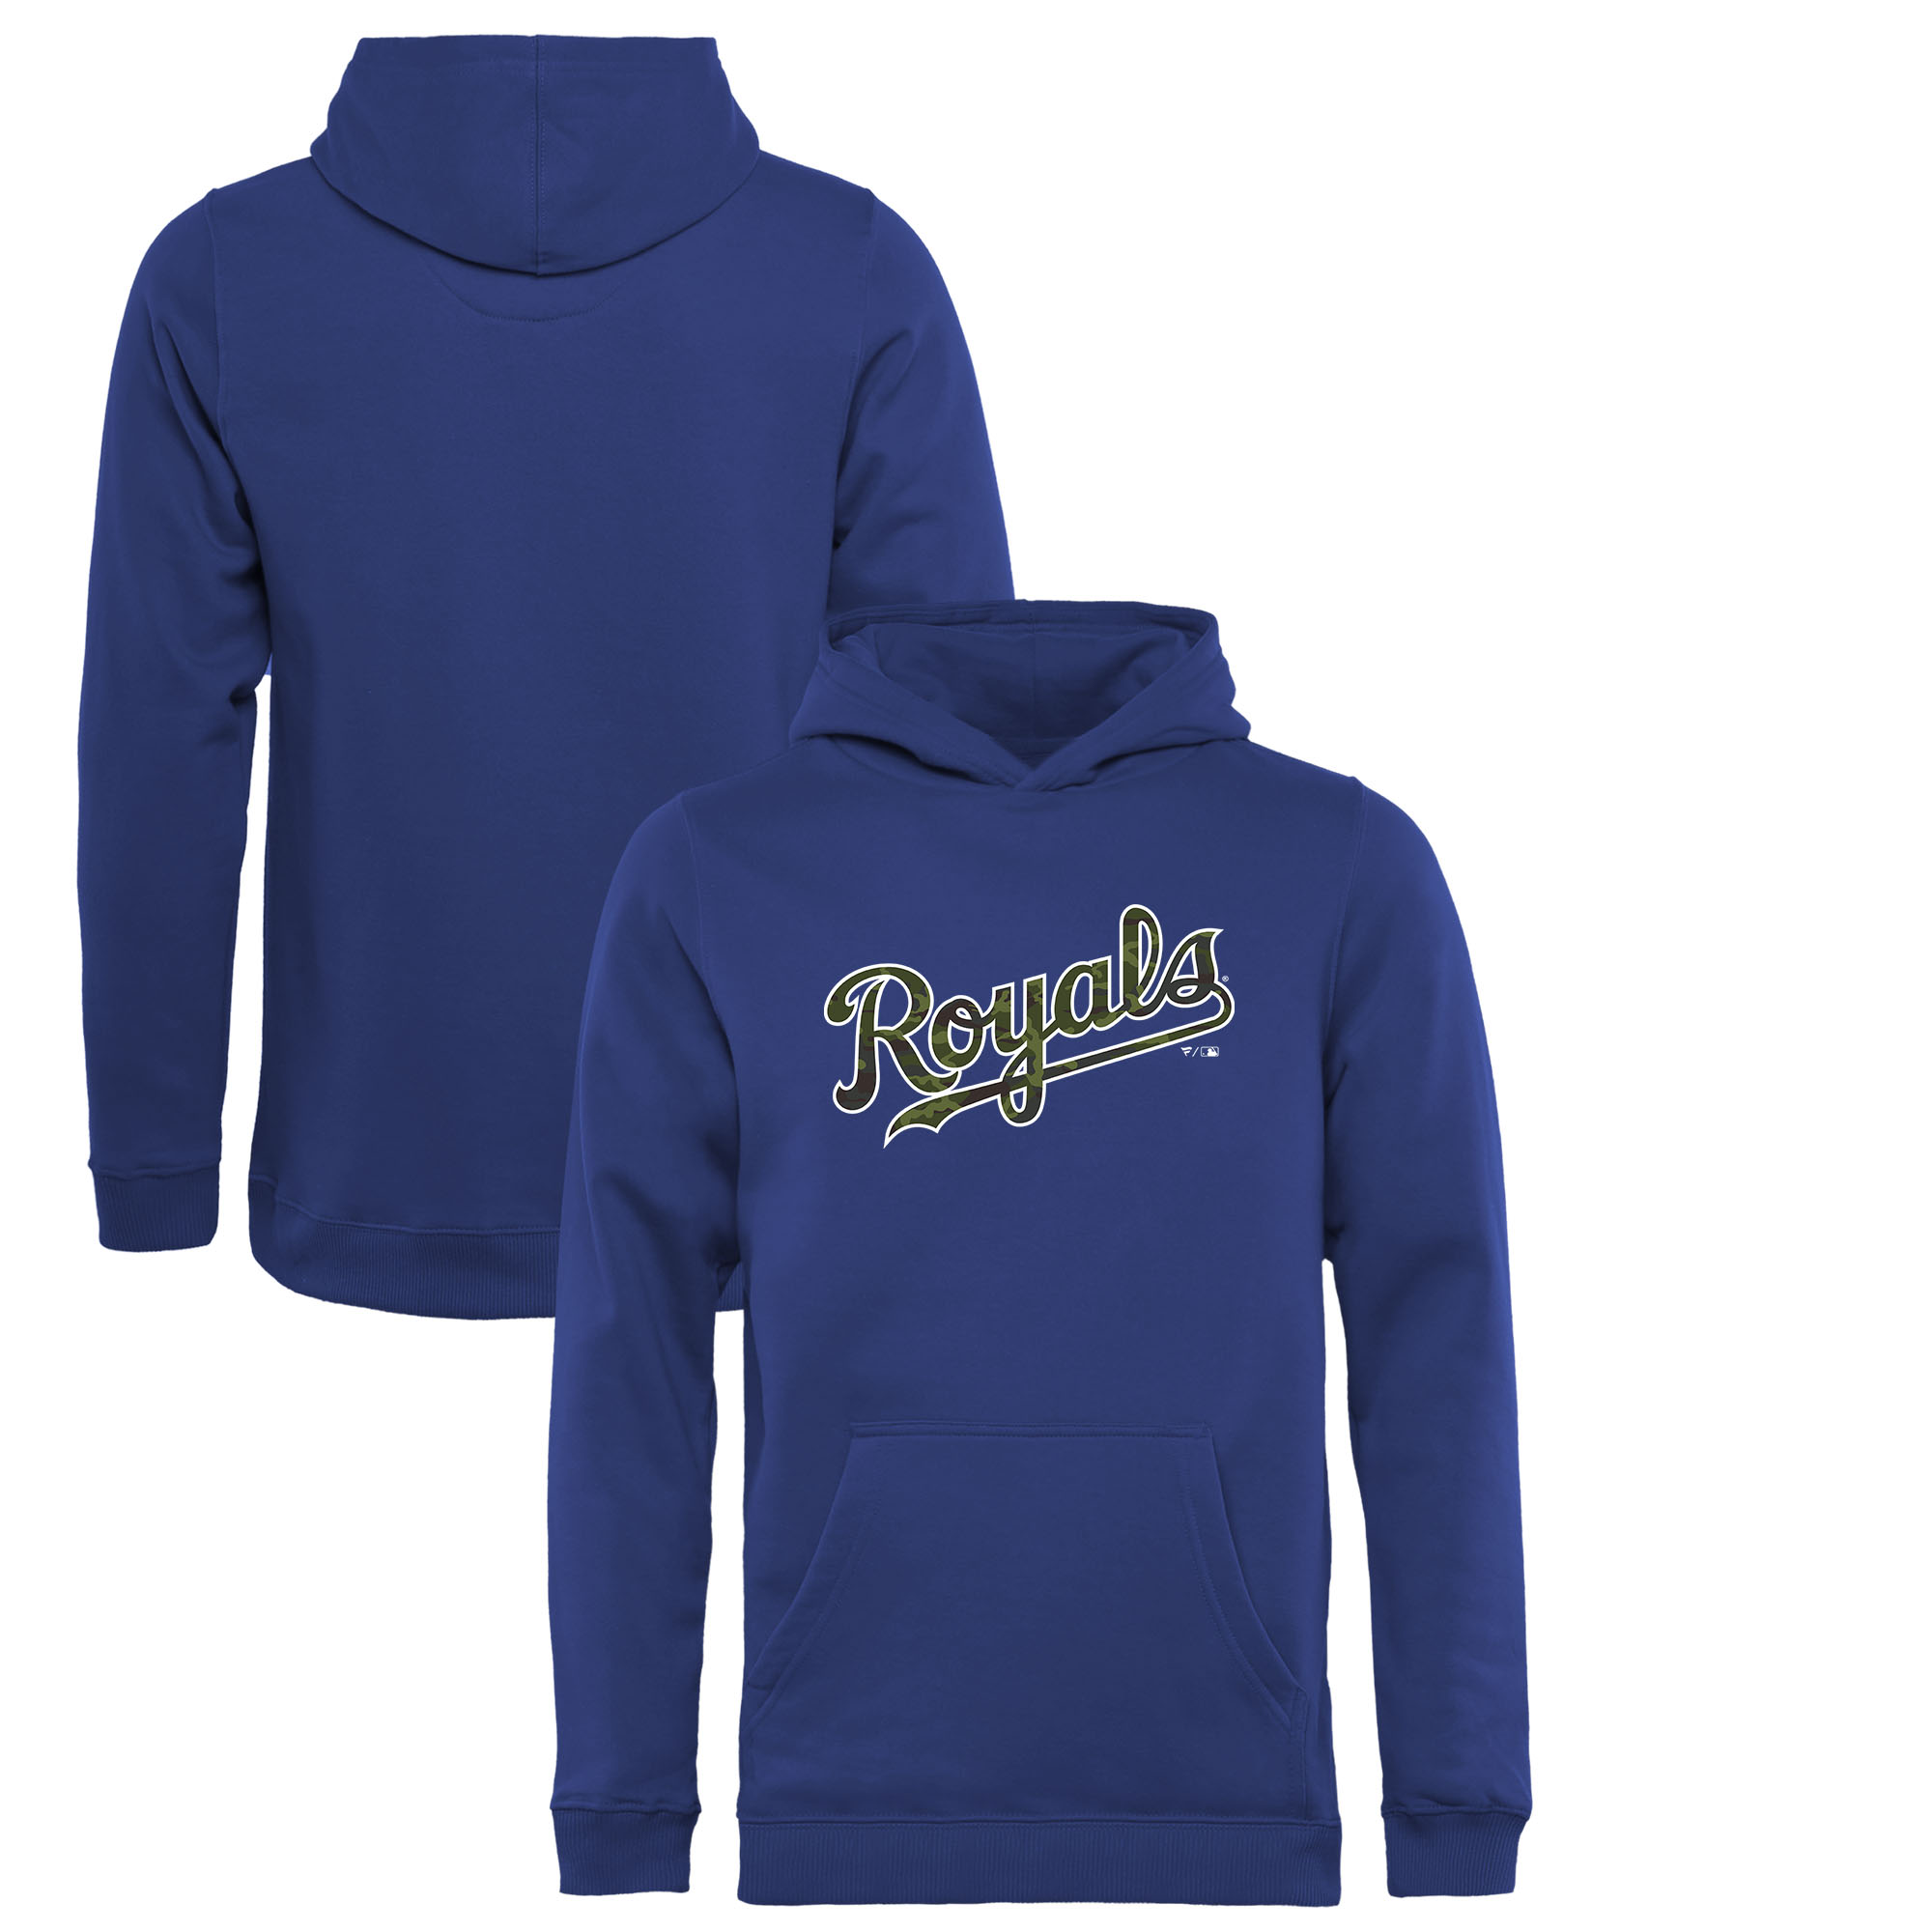 Kansas City Royals Fanatics Branded Youth Memorial Wordmark Pullover Hoodie - Royal